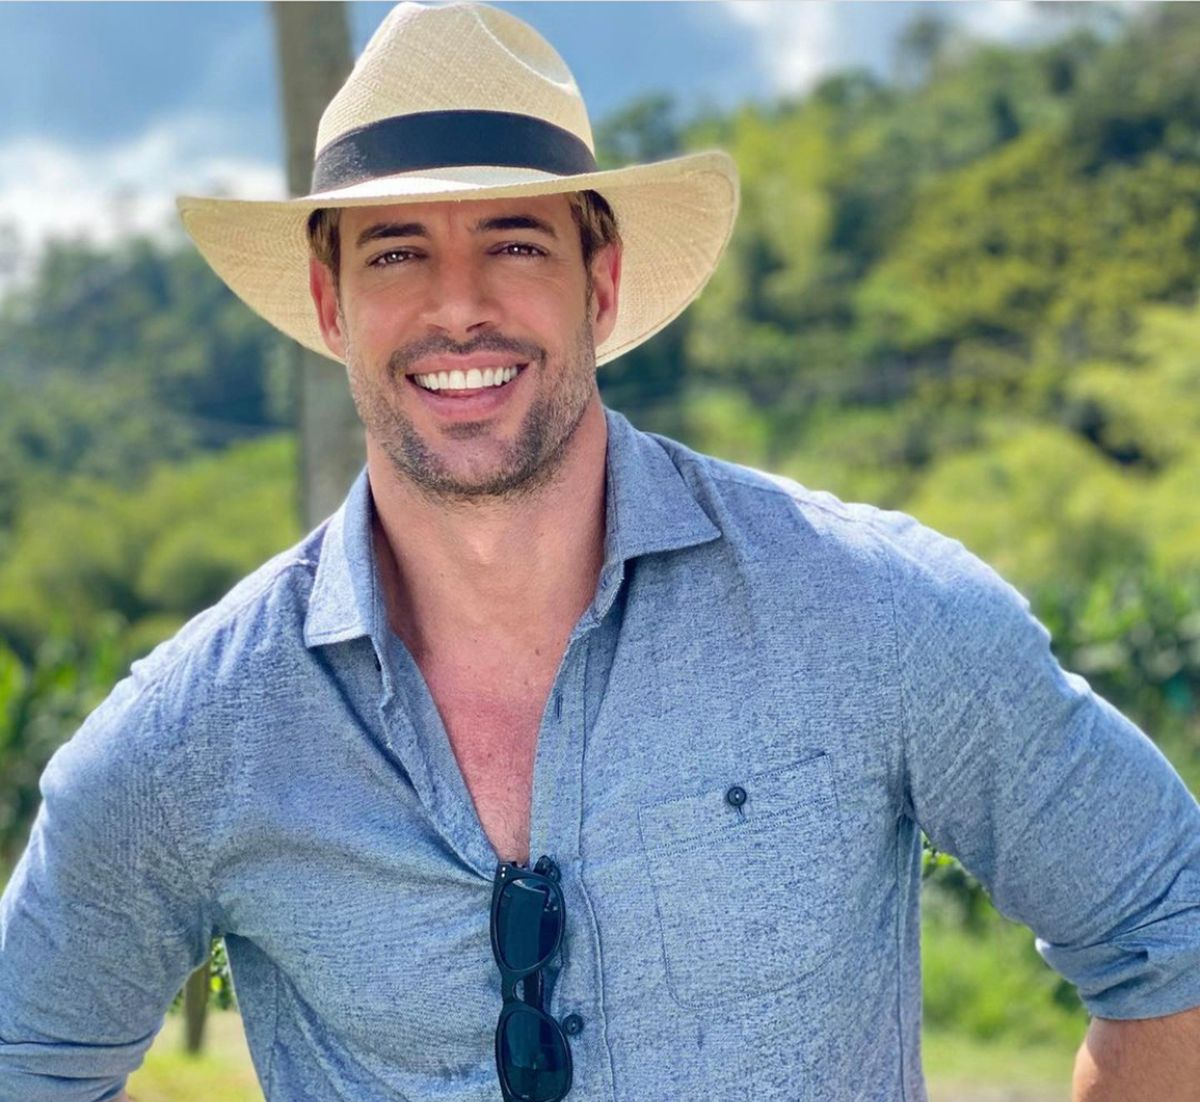 William Levy away from his family shares a nostalgic message | The State